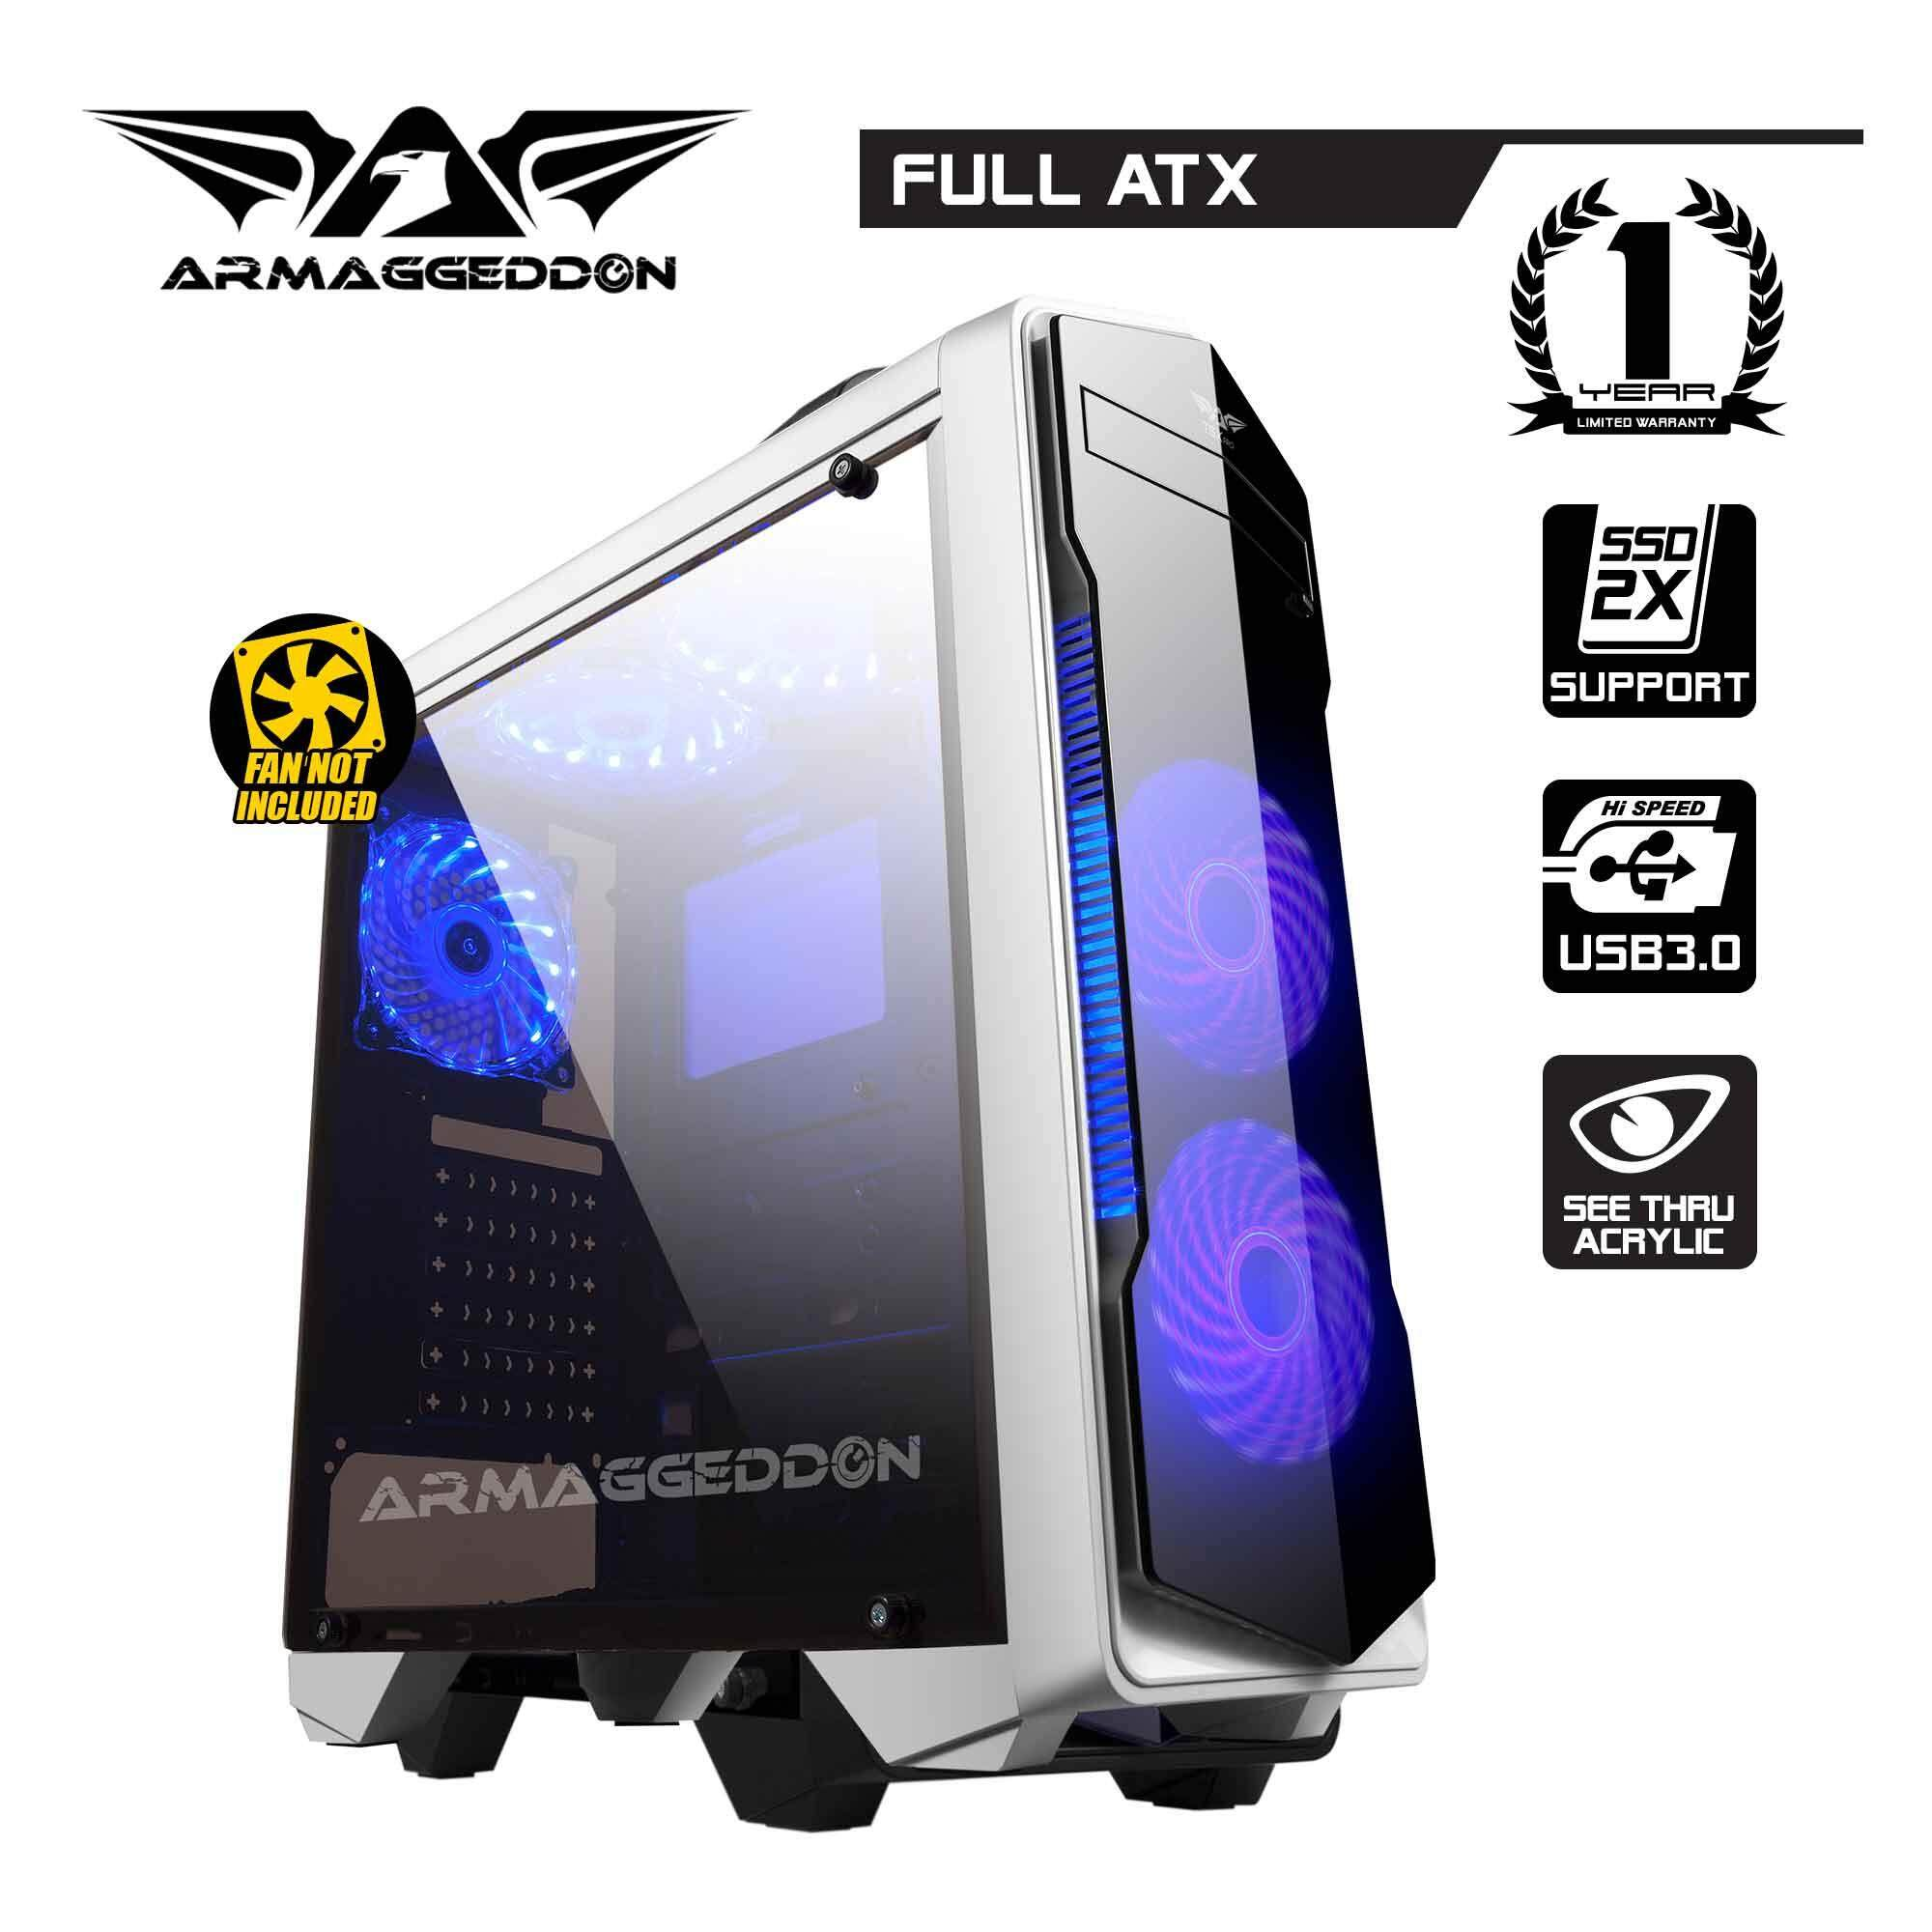 Armaggeddon T5x Pro Full ATX - Smart Gaming Structure PC Case Malaysia